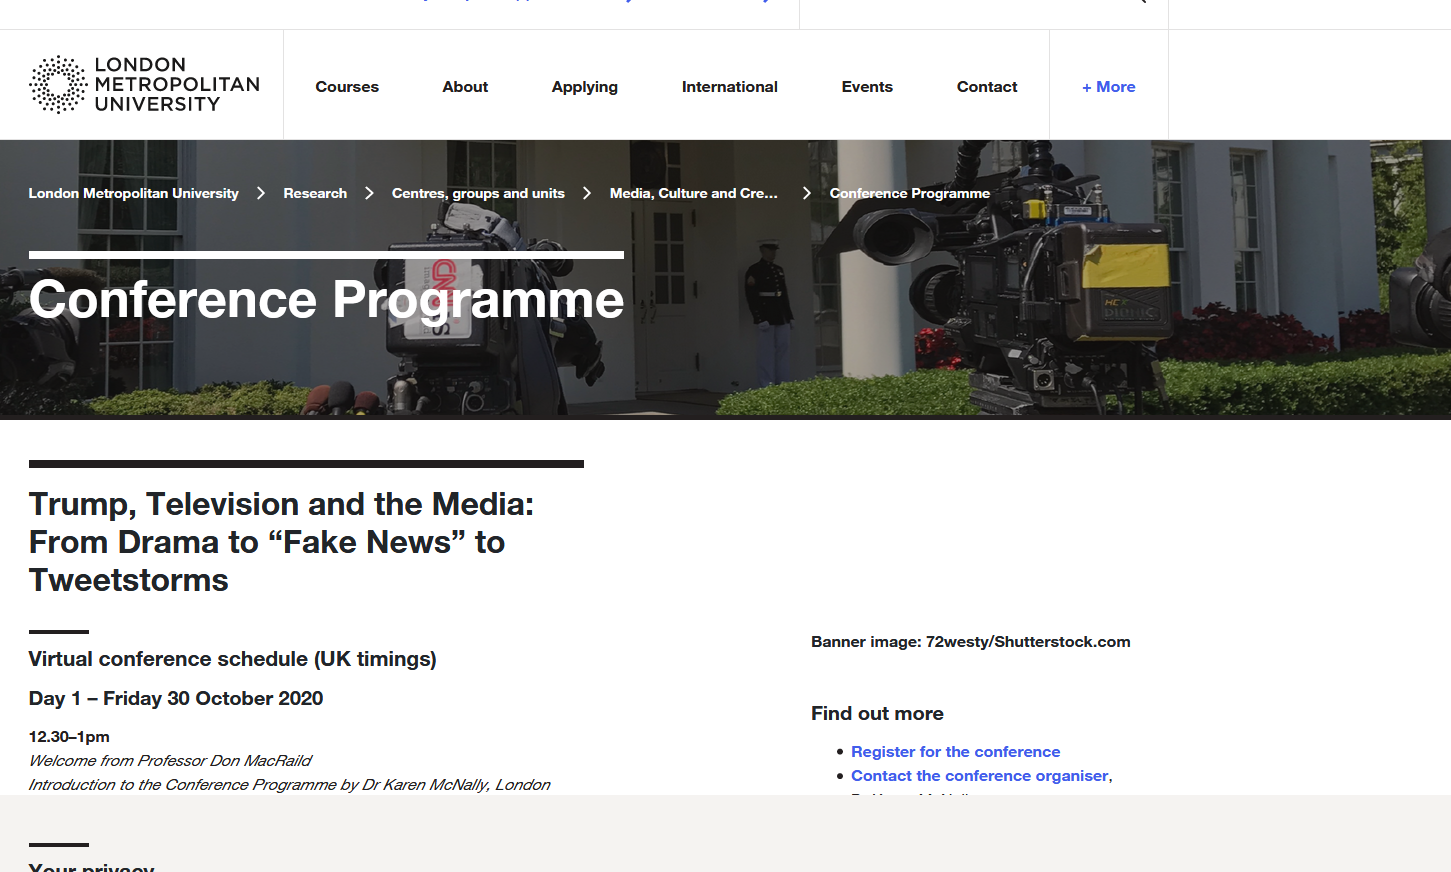 Trump, Television and the Media: From Drama to Fake News to Tweetstorms    Friday 30 and Saturday 31 October 2020    Conference Organiser: Dr Karen McNally, London Metropolitan University